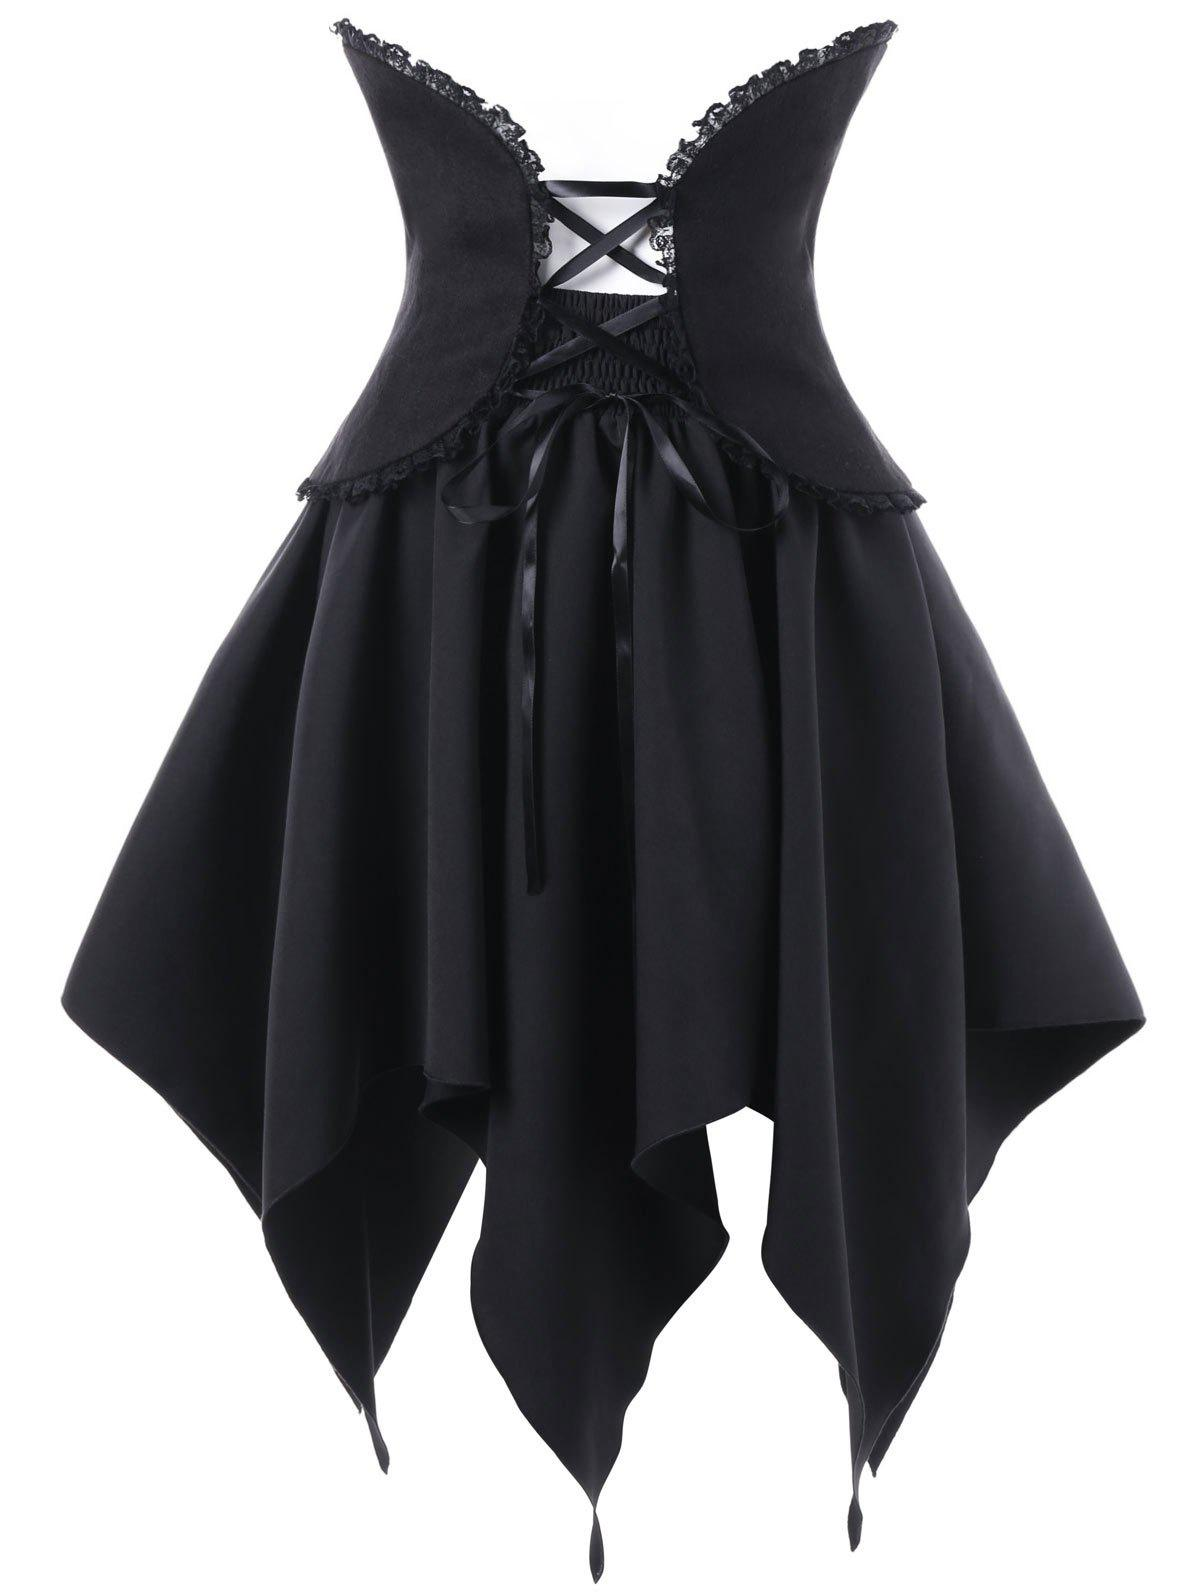 Halloween Lace Up Handerchief Skirt with Corset Belt - BLACK 2XL